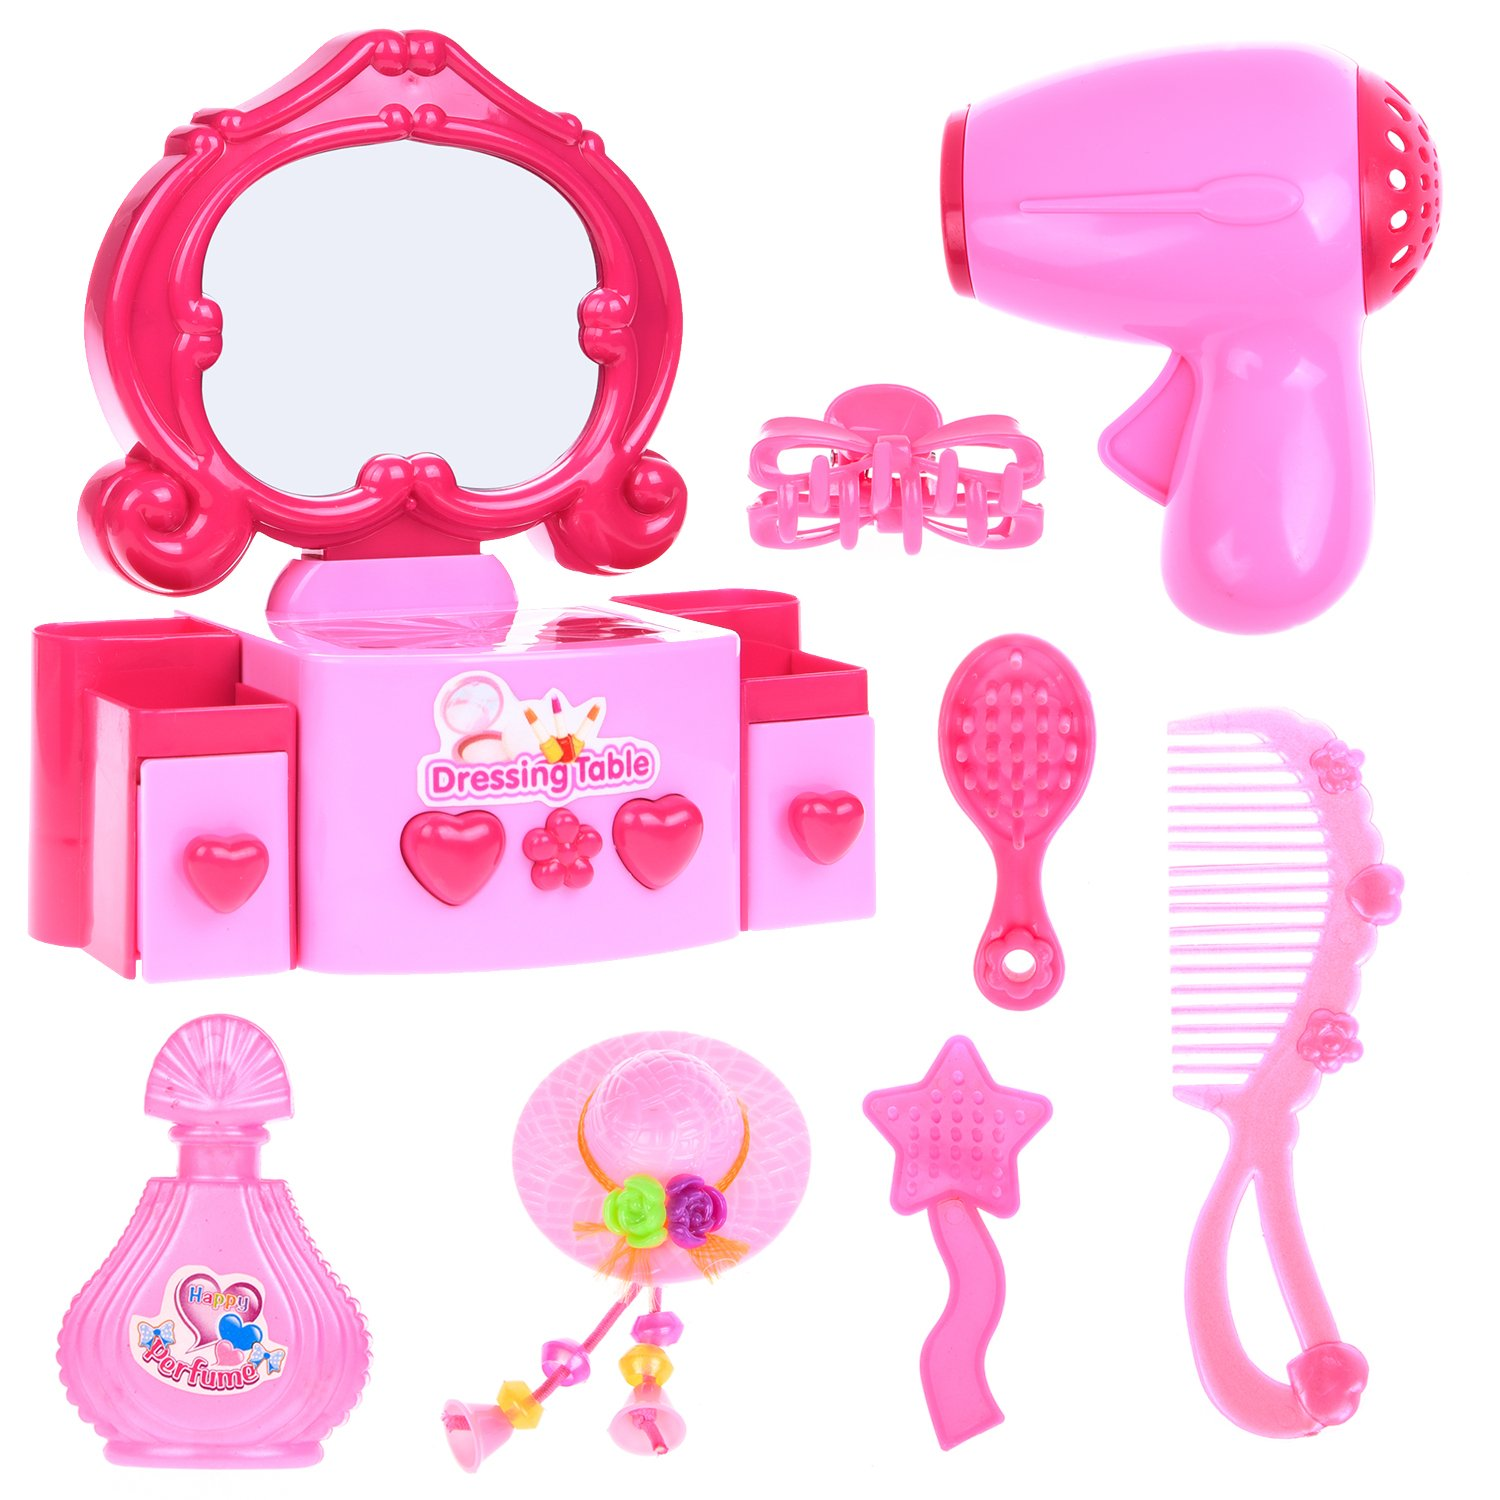 Pretend Makeup for Girls, Little Girls Makeup Set, Kids Makeup Kit Including Vanity with